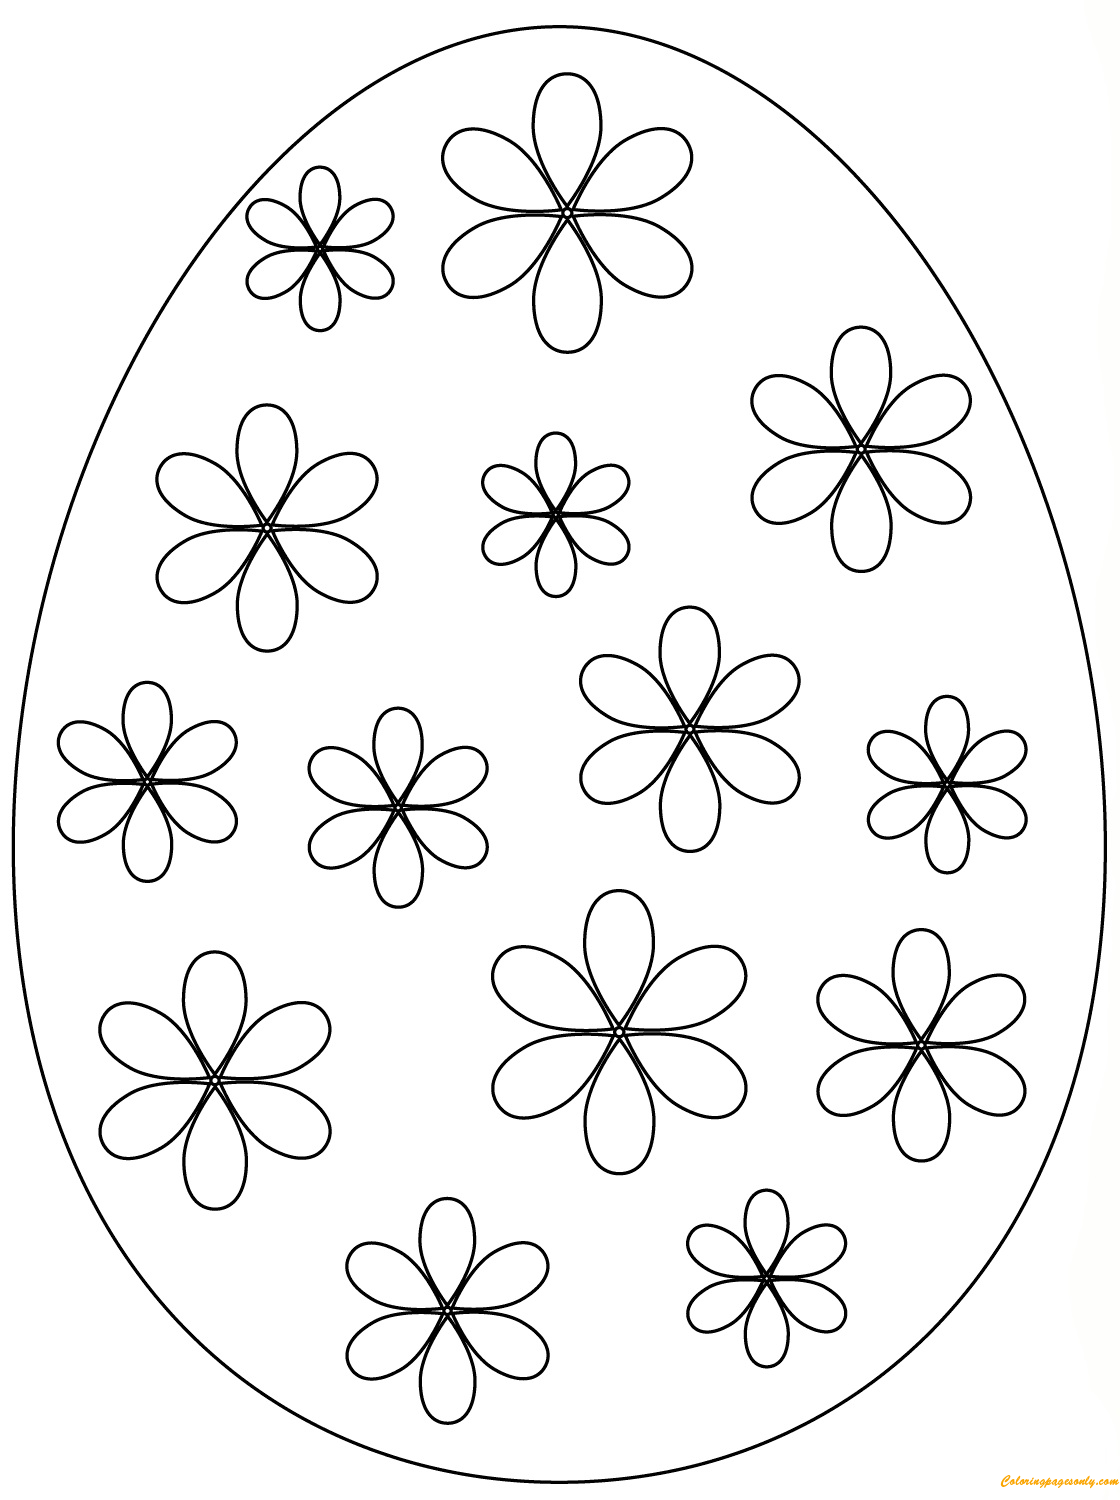 Easter Egg Simple Flowers Coloring Page - Free Coloring ...